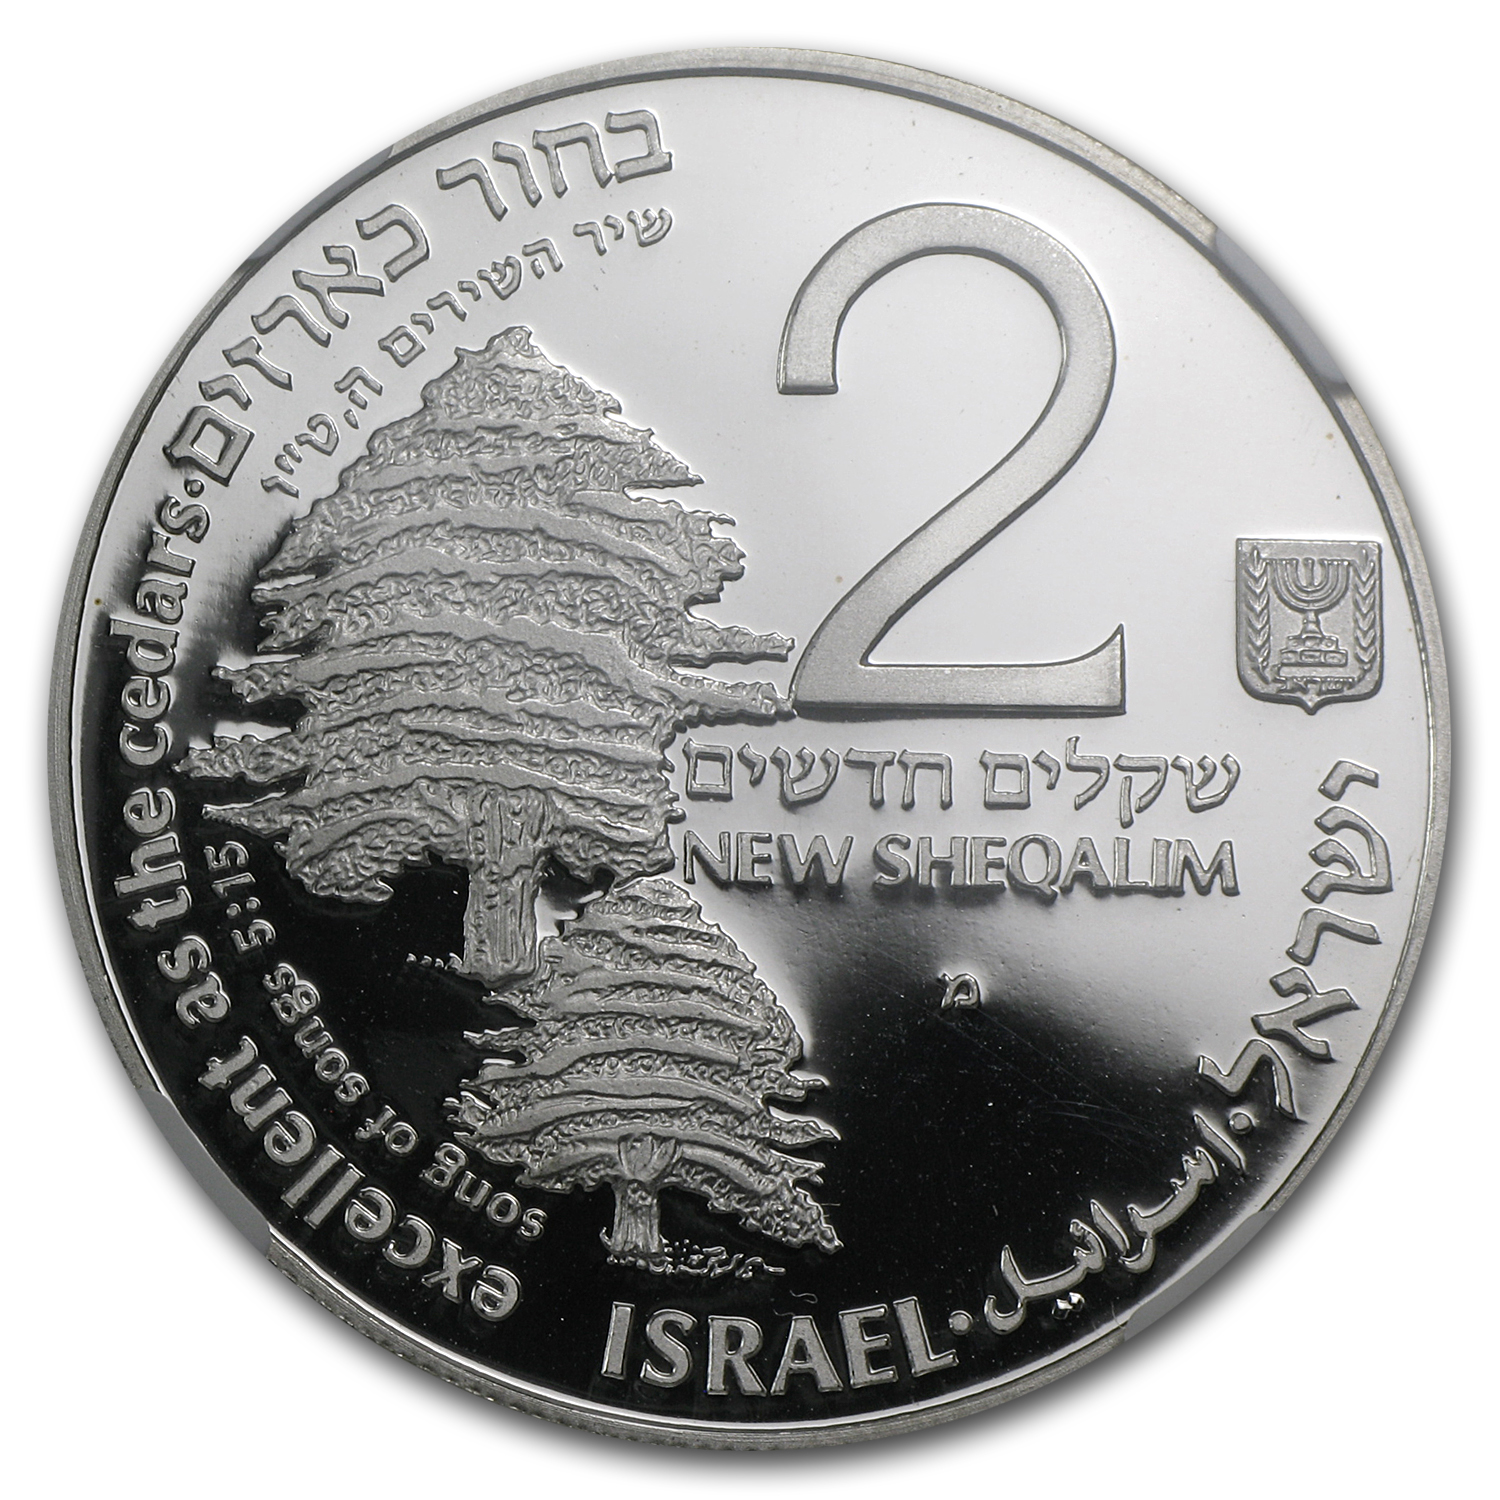 1991 Israel Dove & Cedars Proof Silver 2 NIS Coin PF-69 NGC